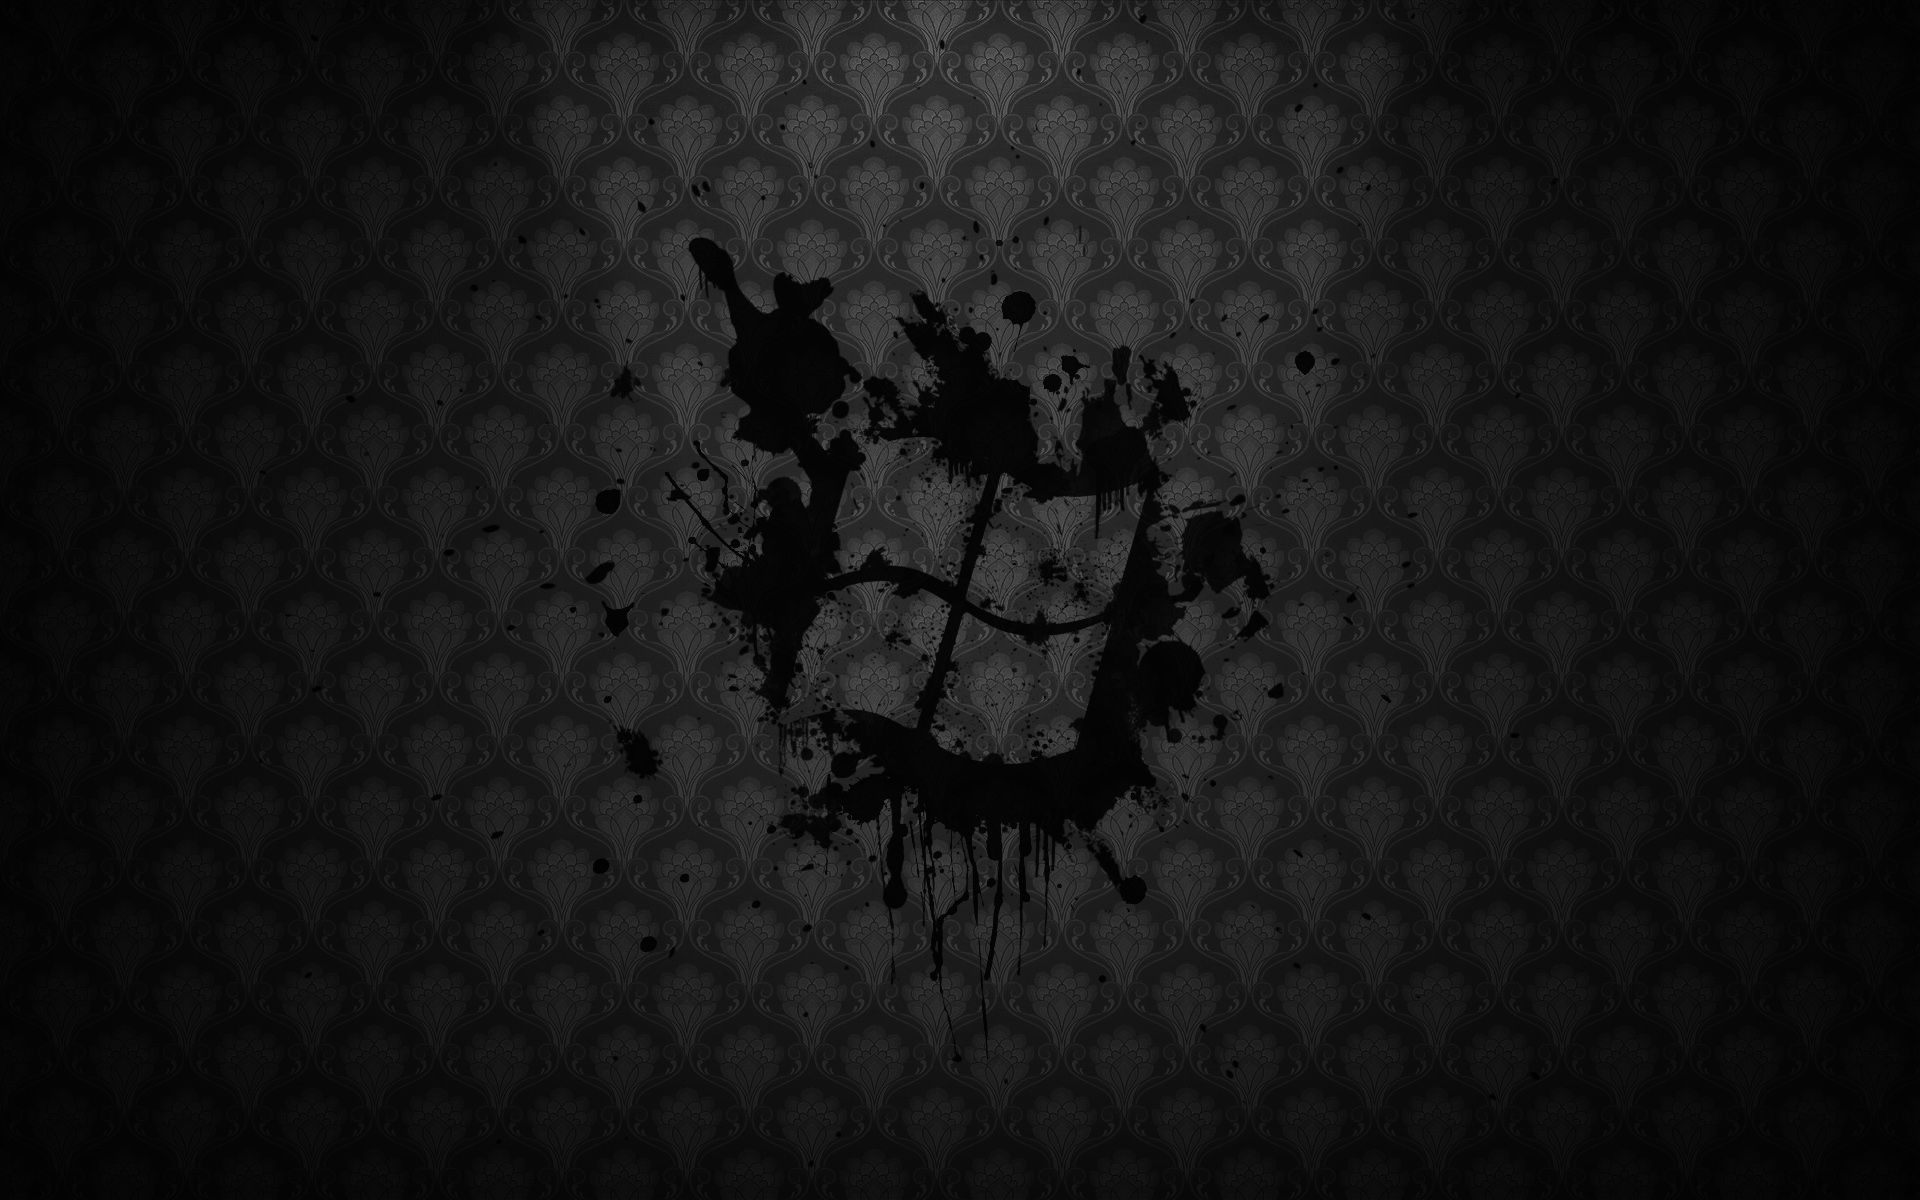 Black Windows Wallpapers - Wallpaper Cave